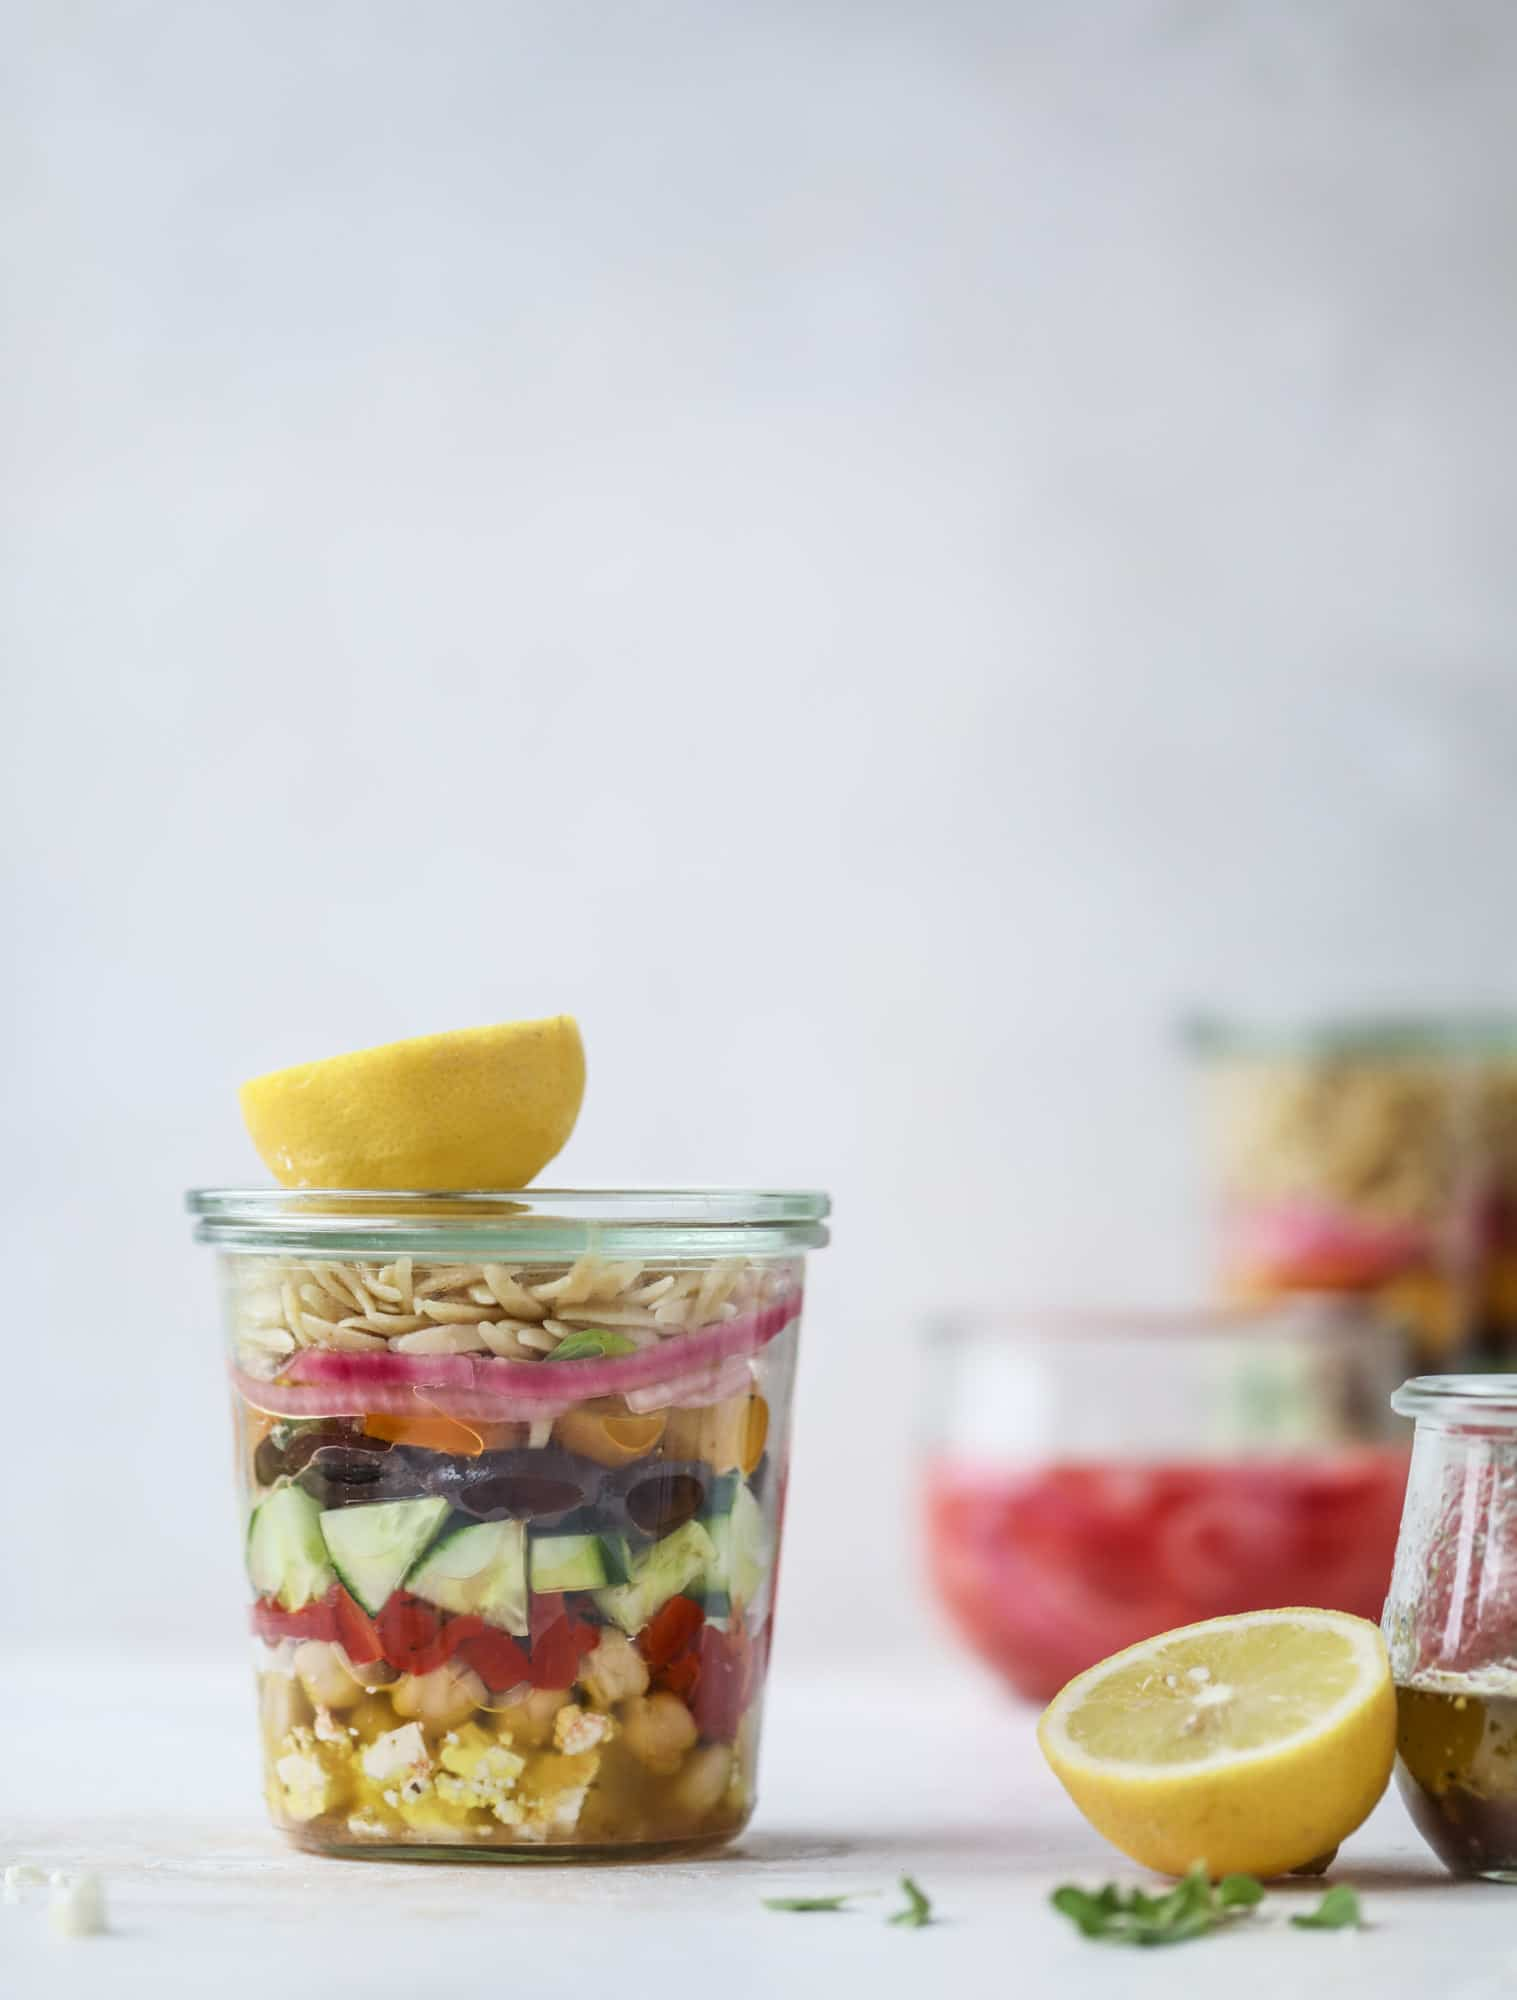 This incredible greek orzo salad in a jar is to die for! The recipe is so easy and flavorful, super satisfying and perfect for meal prep. This salad in a jar is a delicious lunch idea for the weekdays and keeps you feeling full and happy! I howsweeteats.com #salad #jar #greek #orzo #recipes #healthy #lunch #mealprep